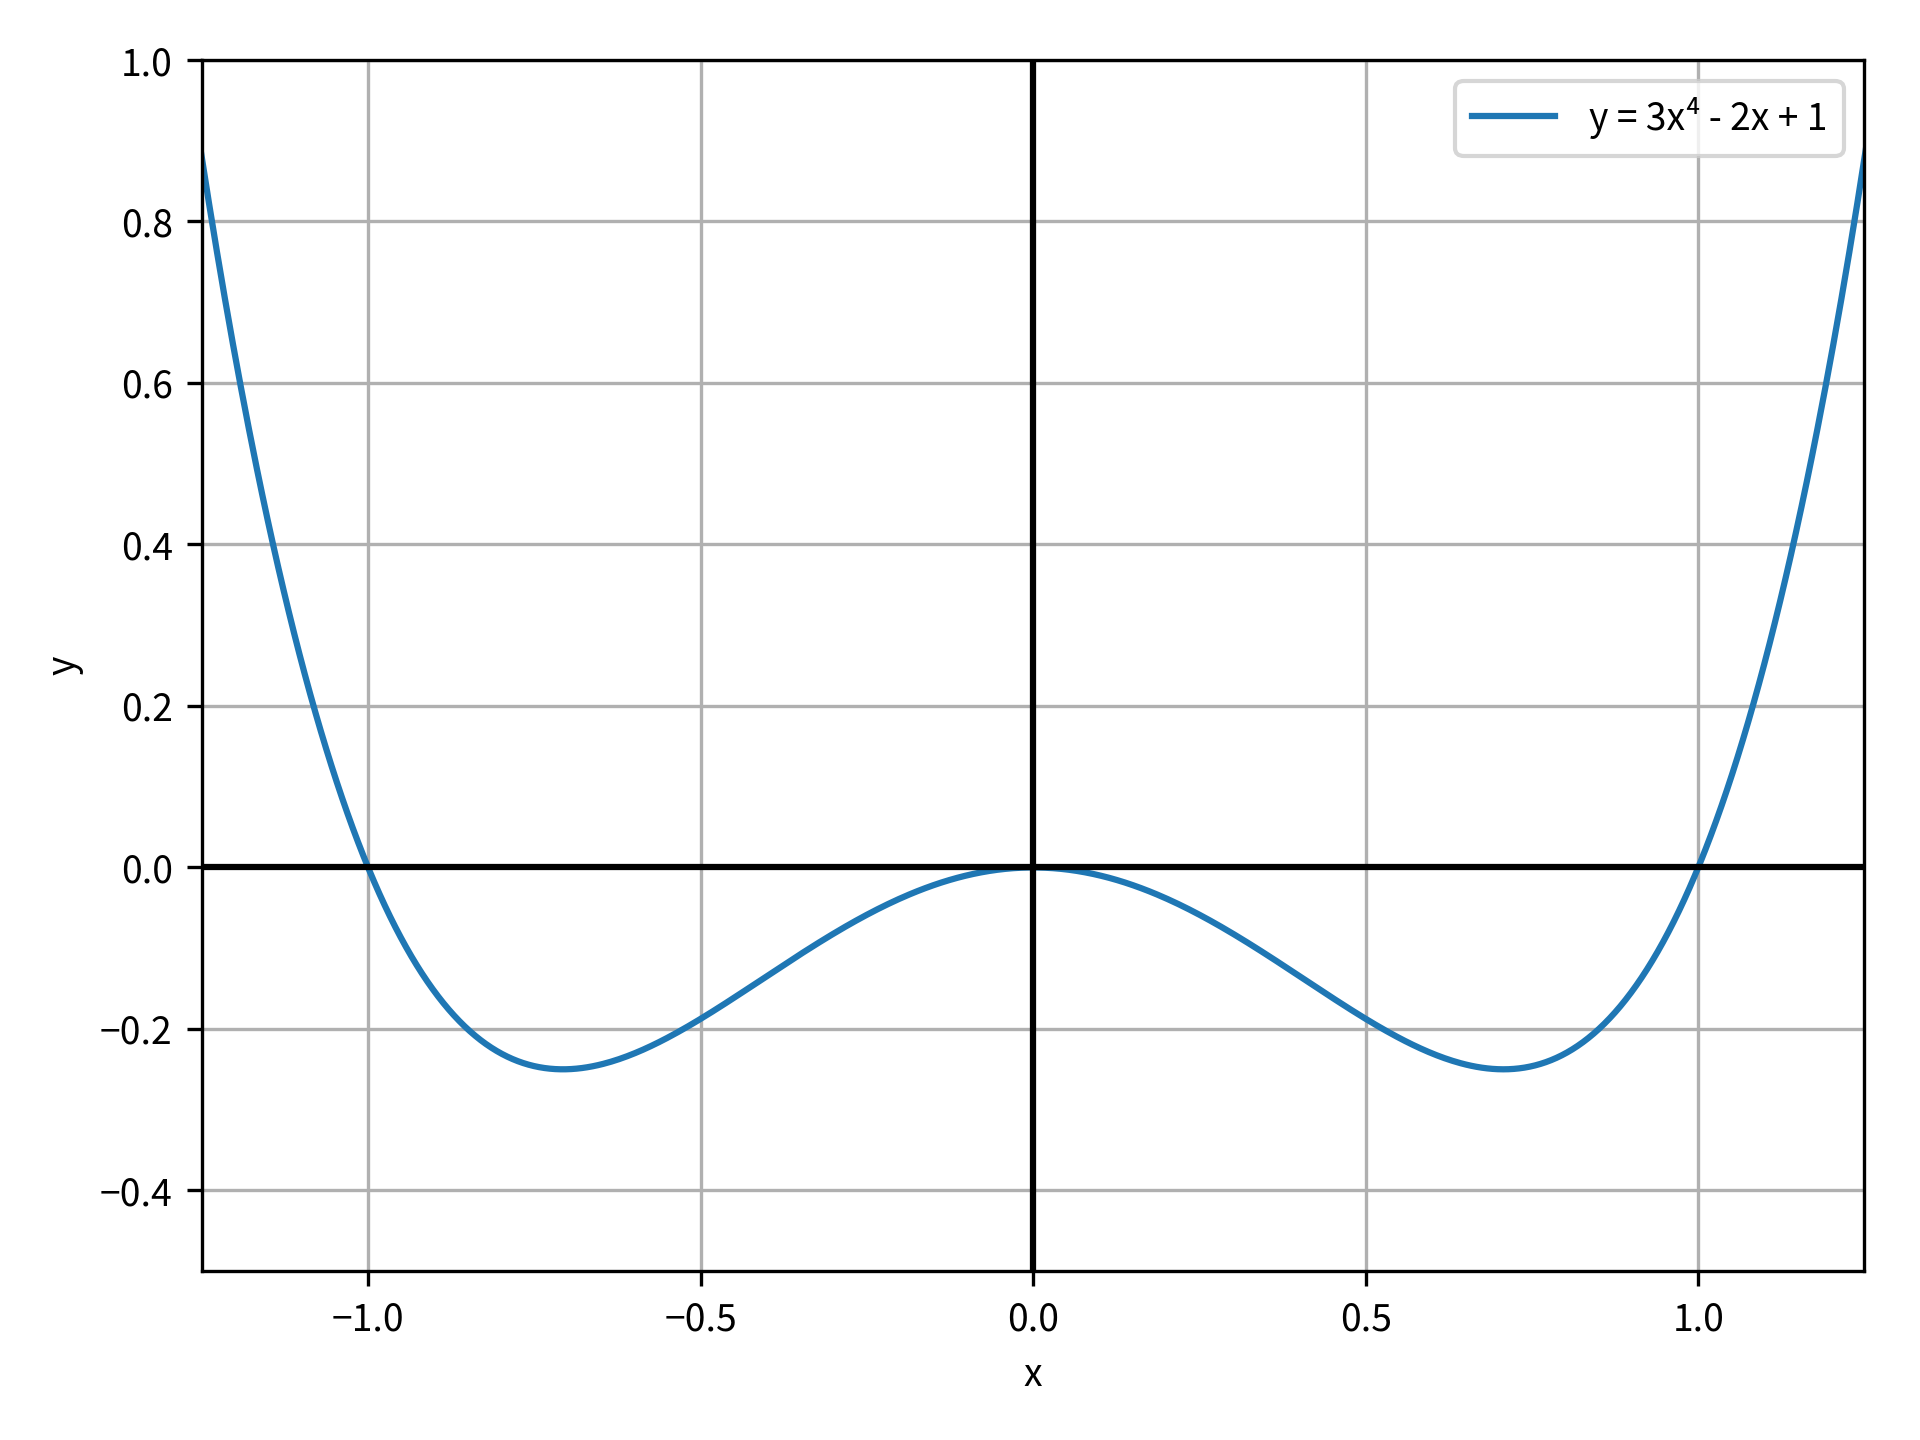 The function y=x⁴-x² plotted on the domain from from -1.25 to 1.25